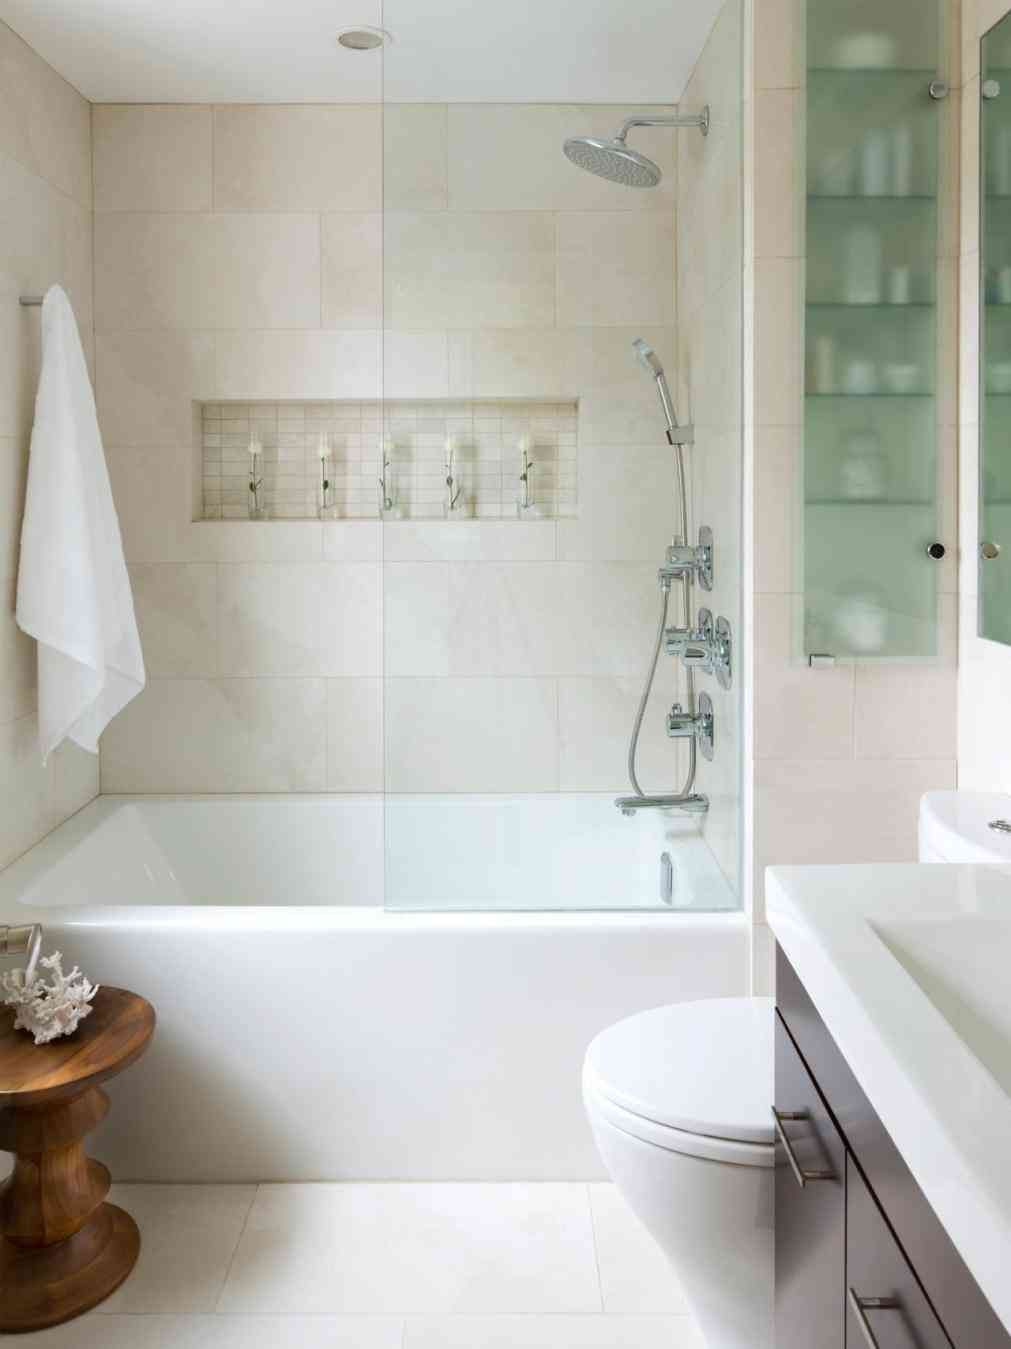 Small Bathroom Ideas Bath Shower Ergonomic Window Over Bathtub Shower 90 Small Bathroo Bathroom Design Small Bathroom Tub Shower Combo Bathroom Remodel Master